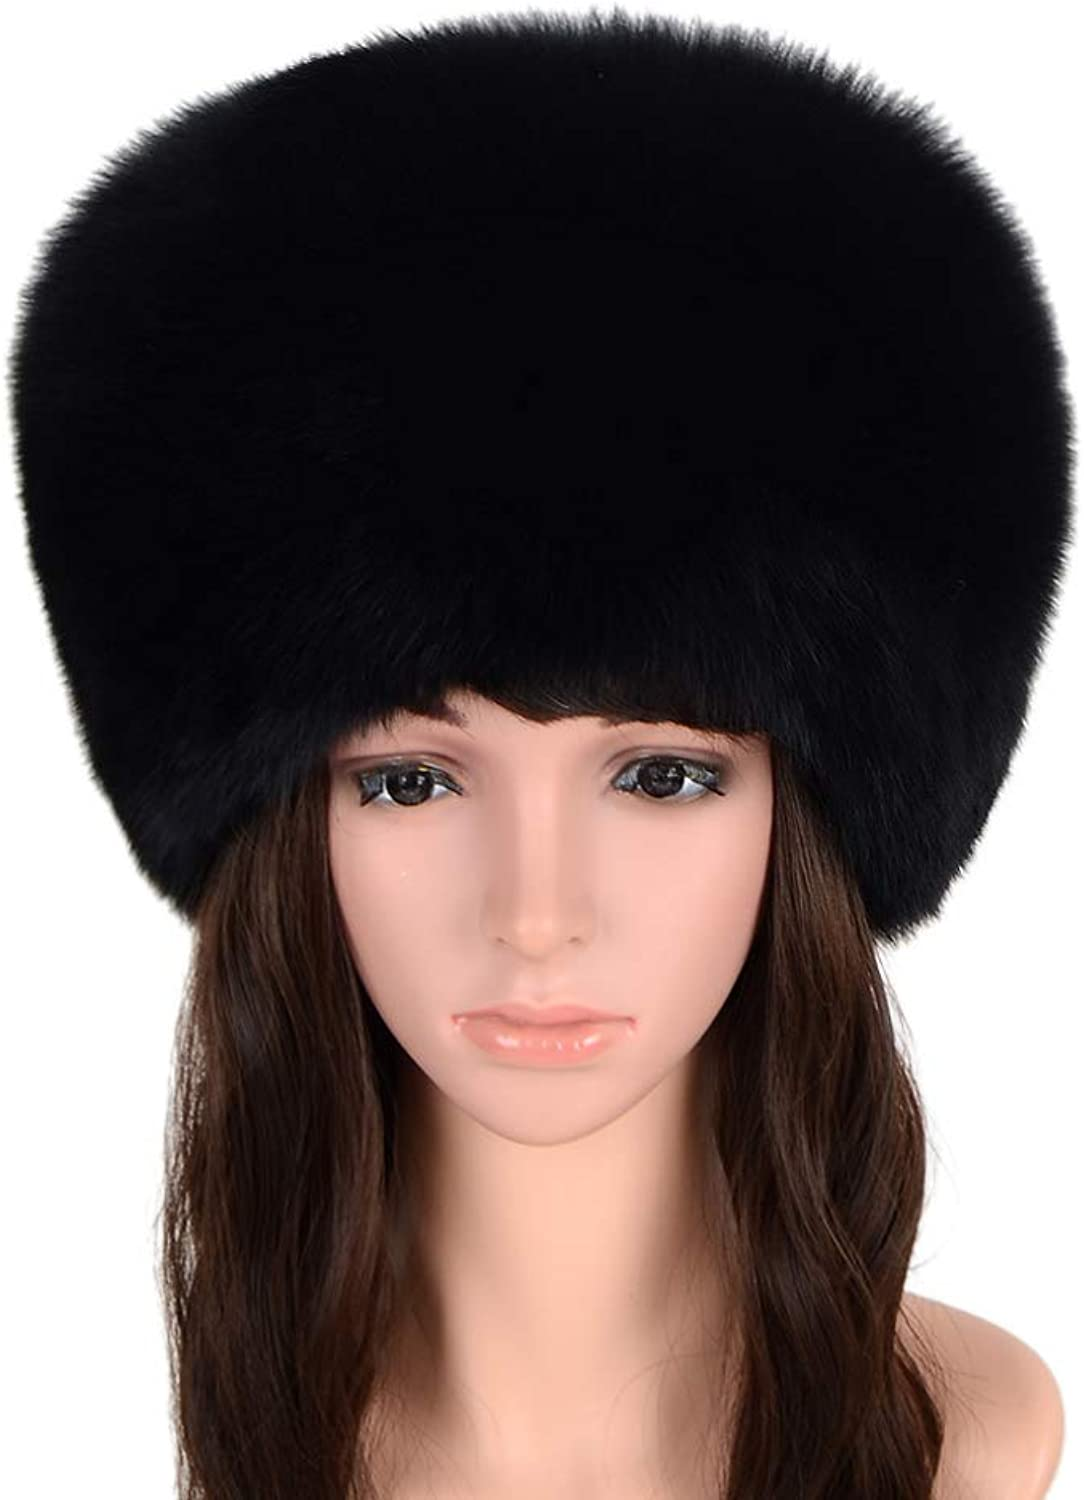 Qmfur Women's Autumn Winter Beanies Genuine Fox Fur Hat WithTail Mongolian Hats